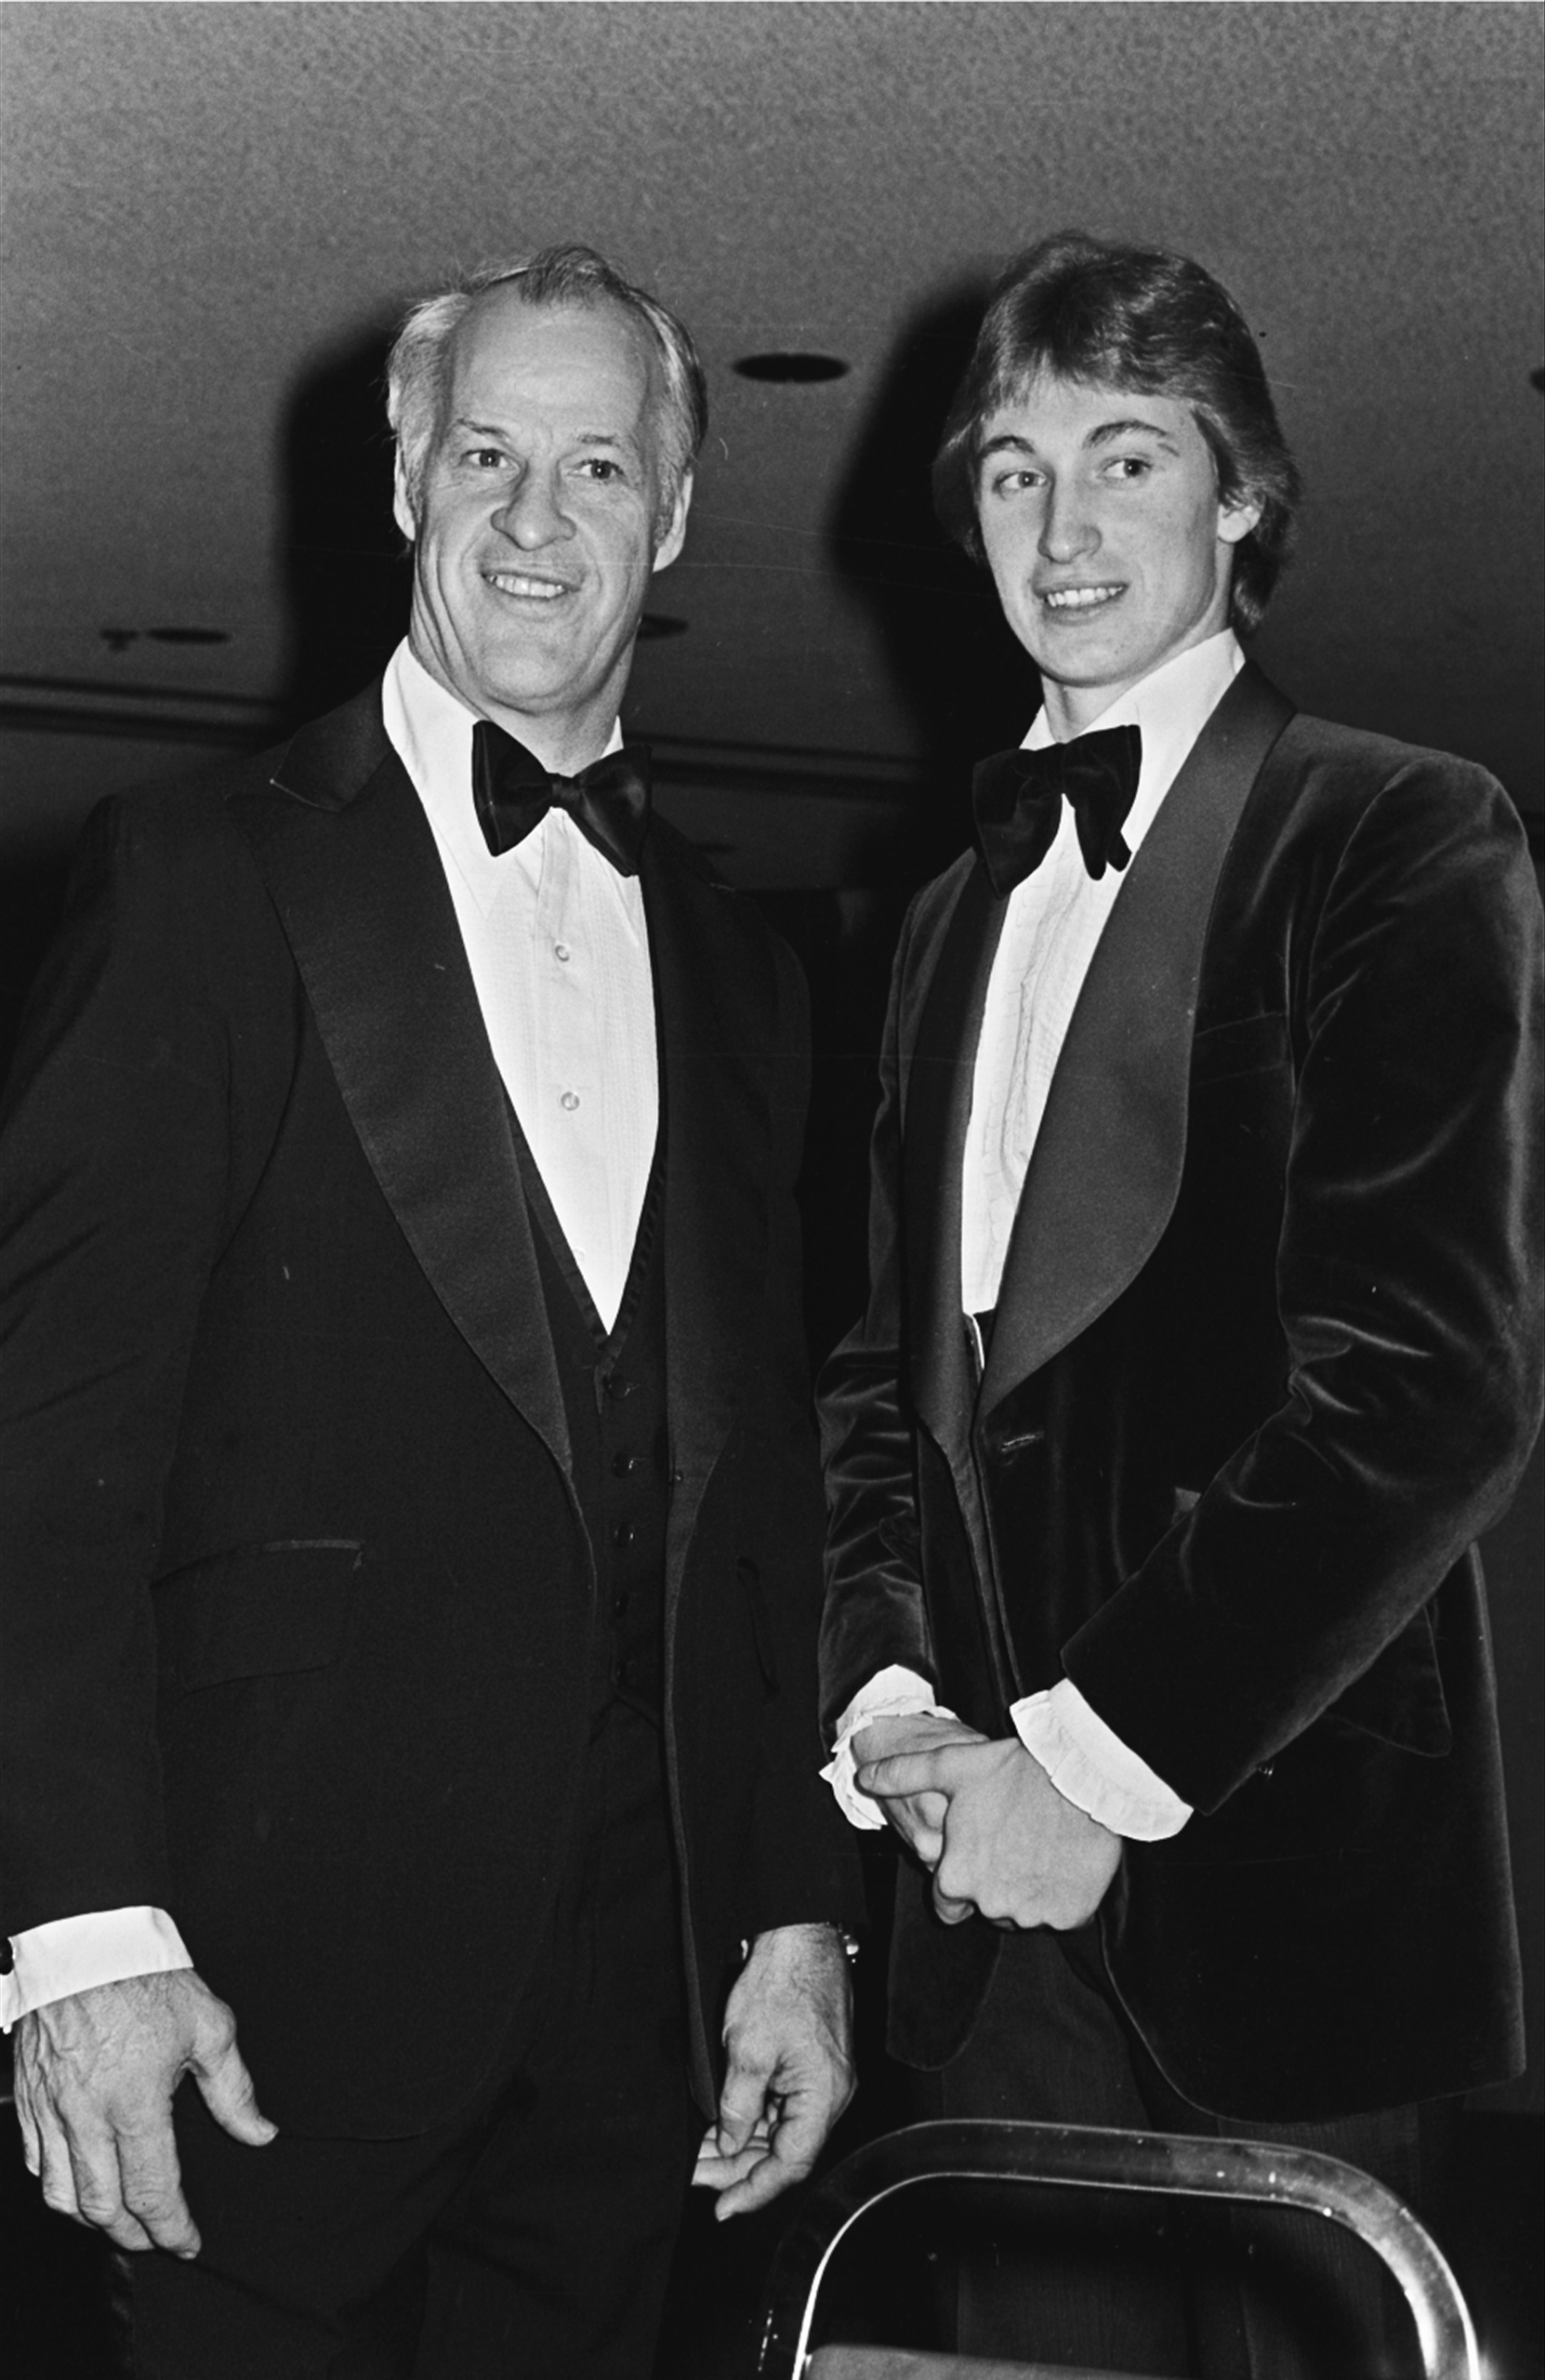 Gordie Howe, left, of the Hartford Whalers, and Wayne Gretzky of the Edmonton Oilers, pose for photographers at the NHL All-Star benefit dinner in Detroit on Feb. 5, 1980.